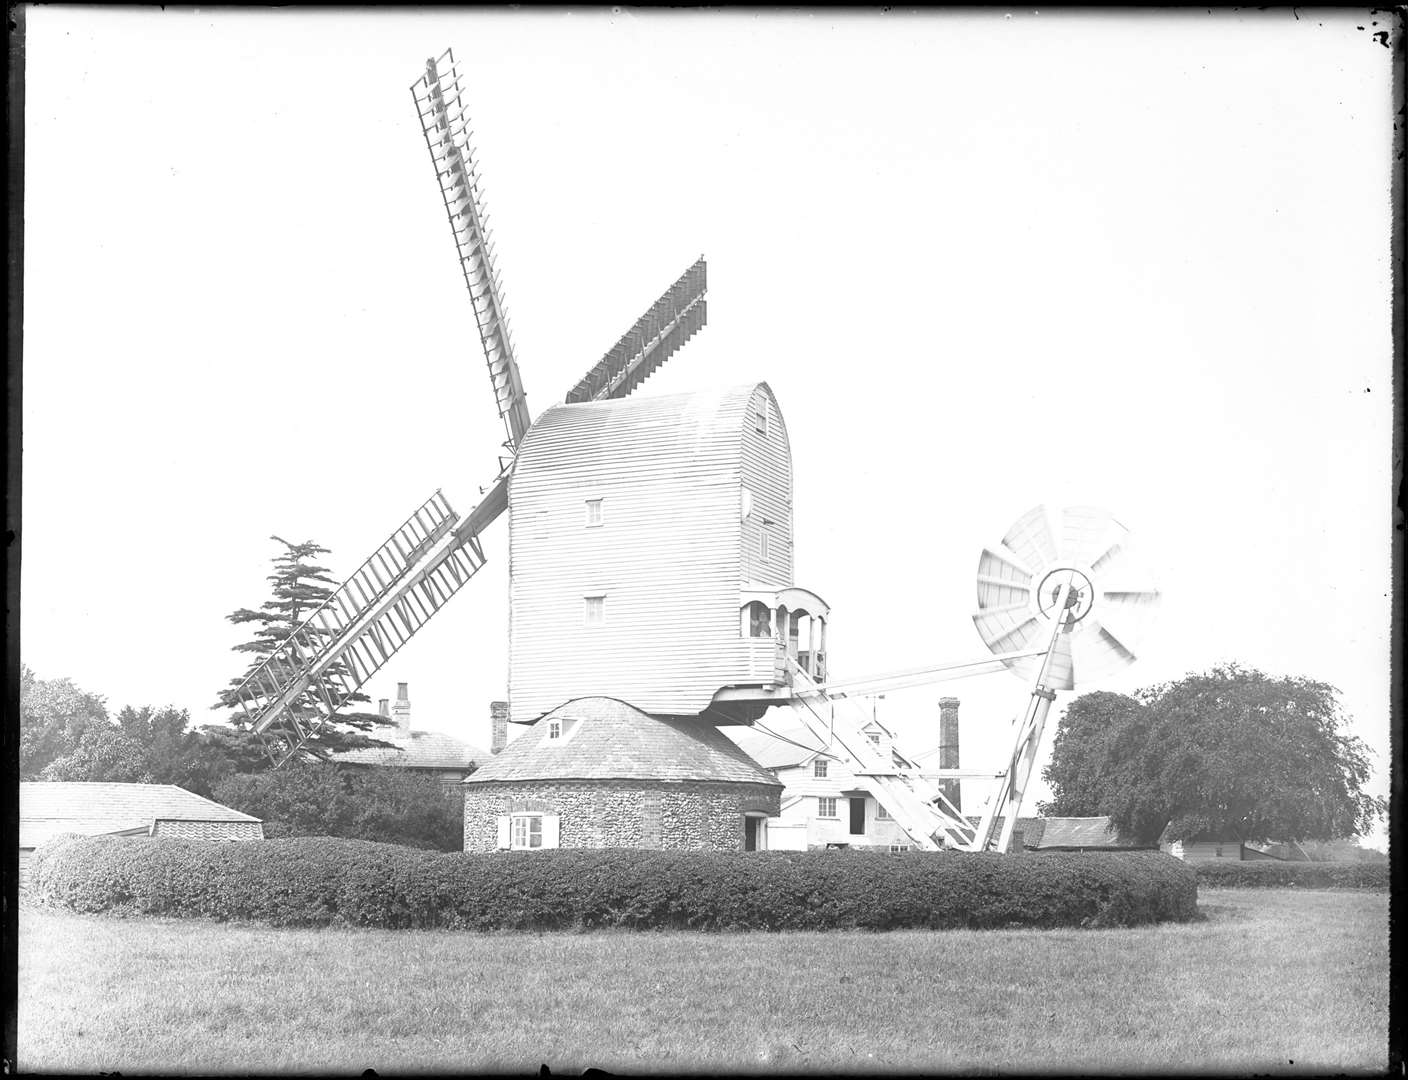 The fulling mill at Barton Mills. From the Spanton Jarman collection (2678837)